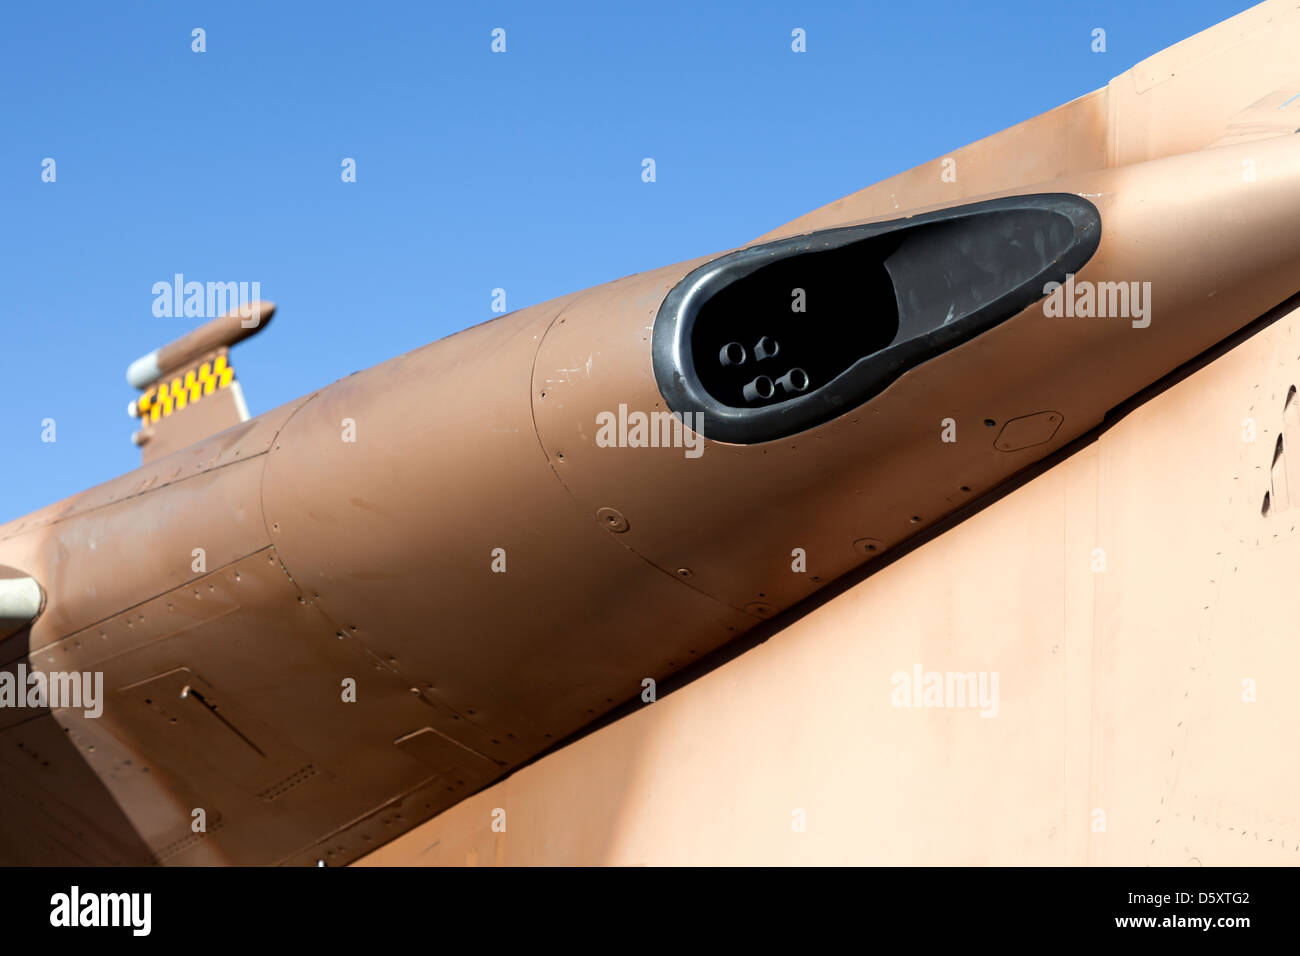 M61 Vulcan cannon peeks from the wing root of a F-15 Eagle of the 57th Adversary Tactics Group based at Nellis AFB. - Stock Image